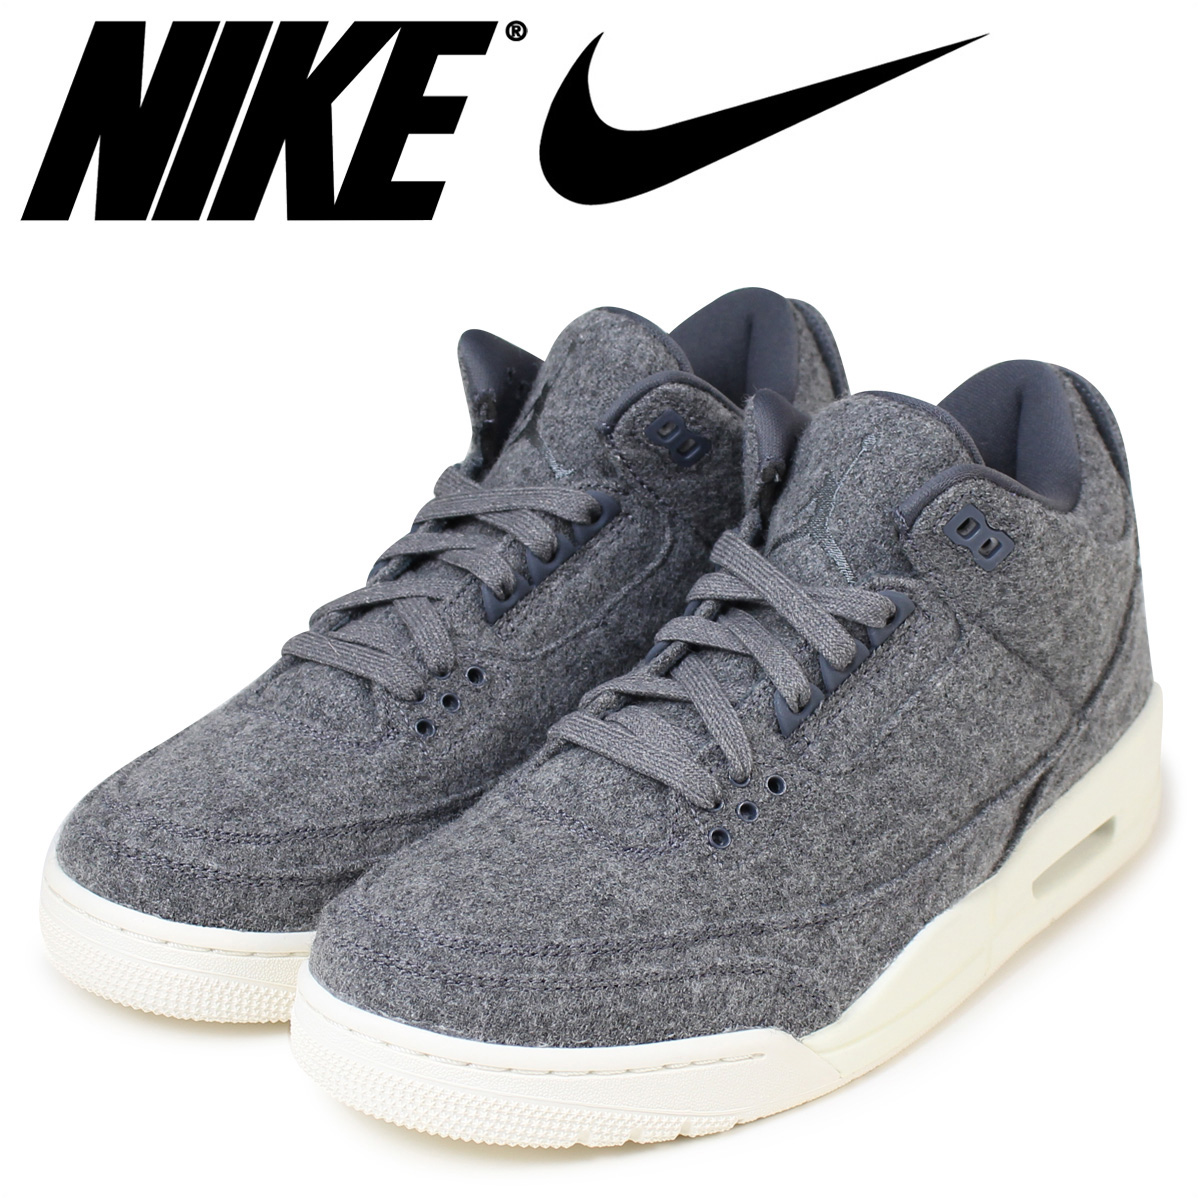 e2e2aff1d6b1 ALLSPORTS  Nike NIKE Air Jordan men sneakers AIR JORDAN 3 RETRO WOOL ...